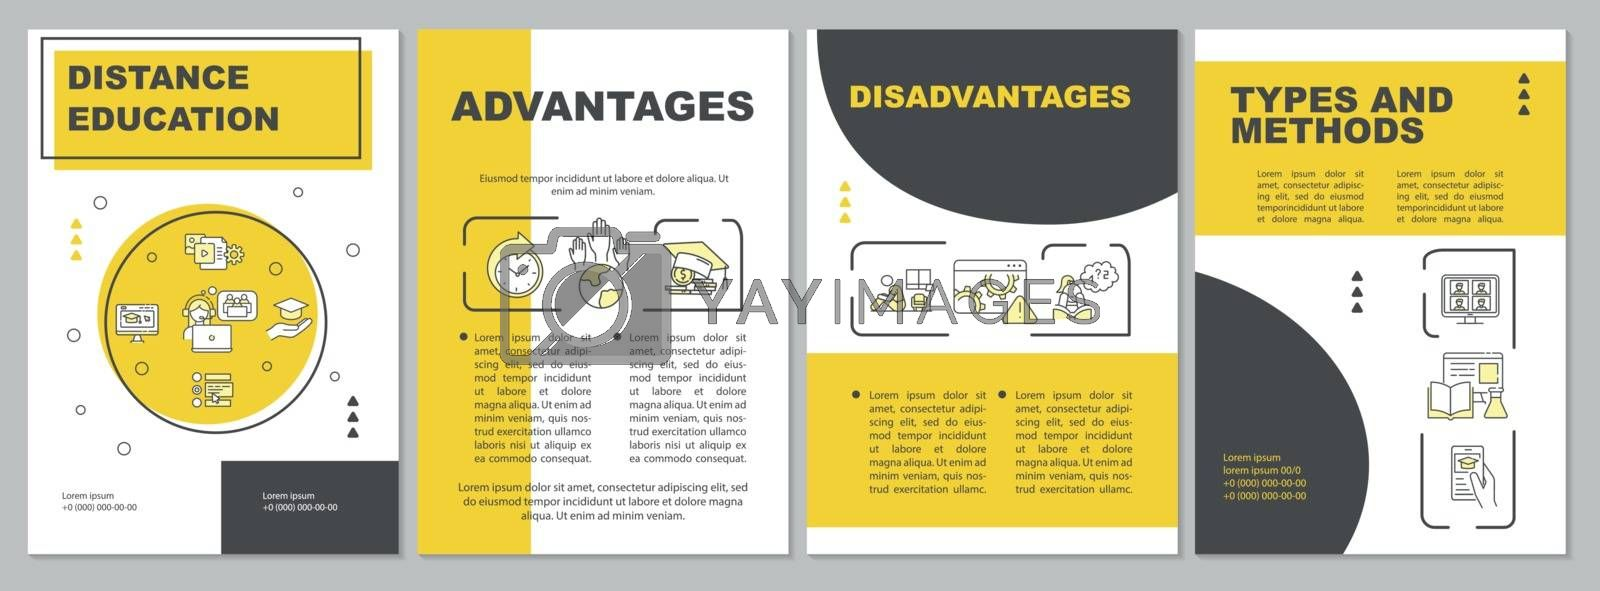 Distance education brochure template. Remote learning methods. Flyer, booklet, leaflet print, cover design with linear icons. Vector layouts for magazines, annual reports, advertising posters